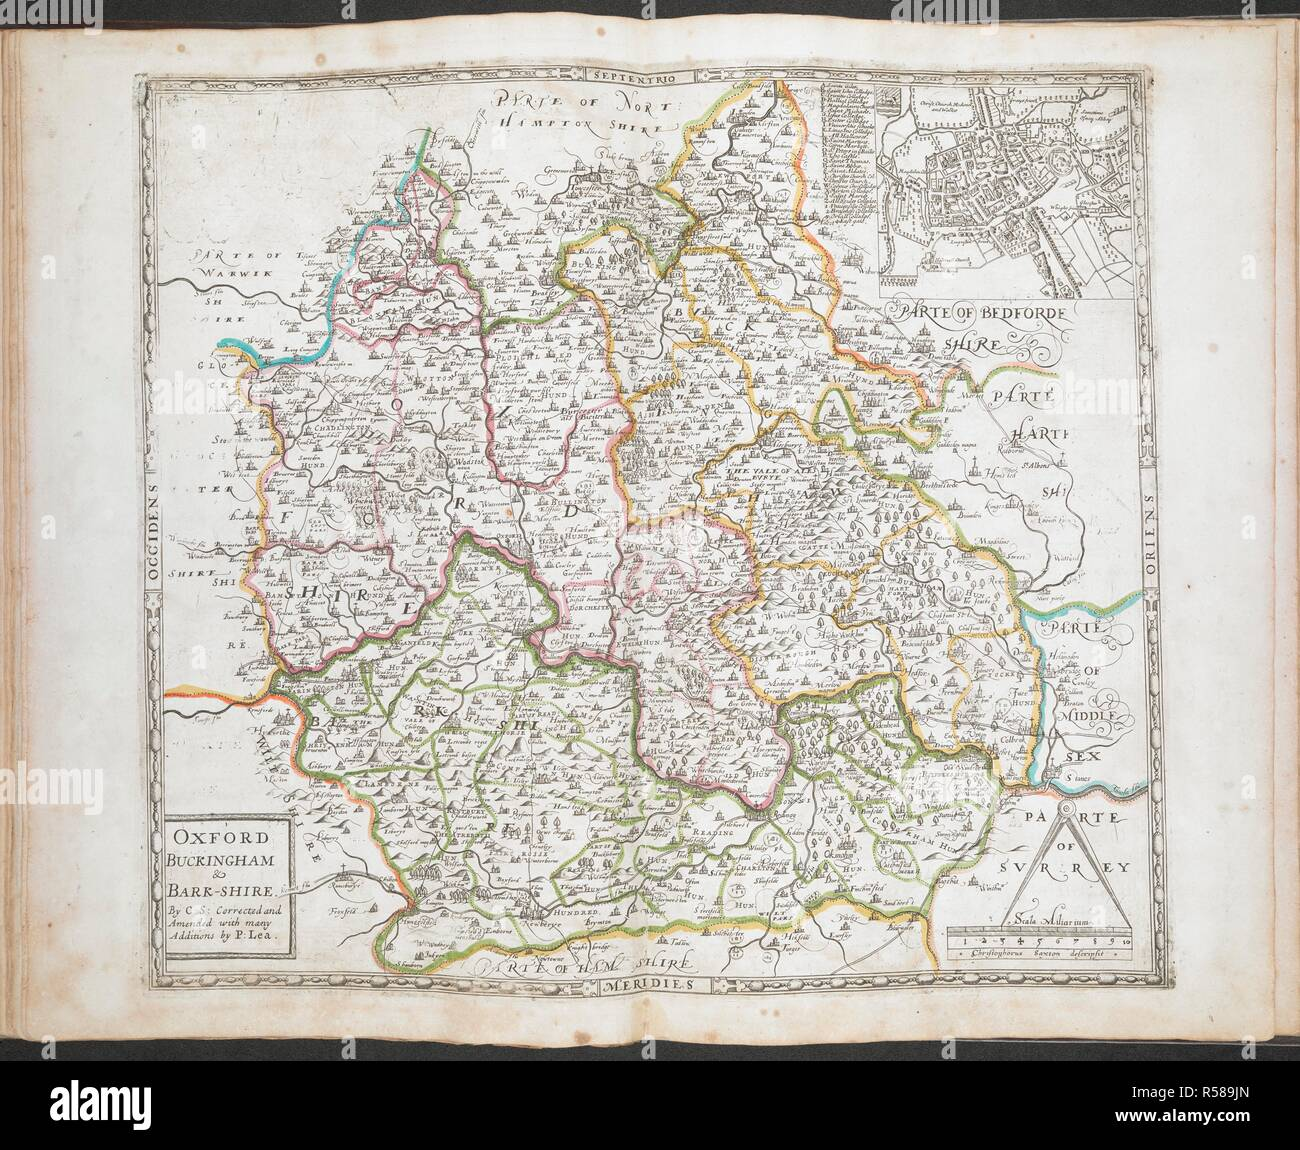 A Map Of Oxford Buckinghamshire And Berkshire All The Shires Of